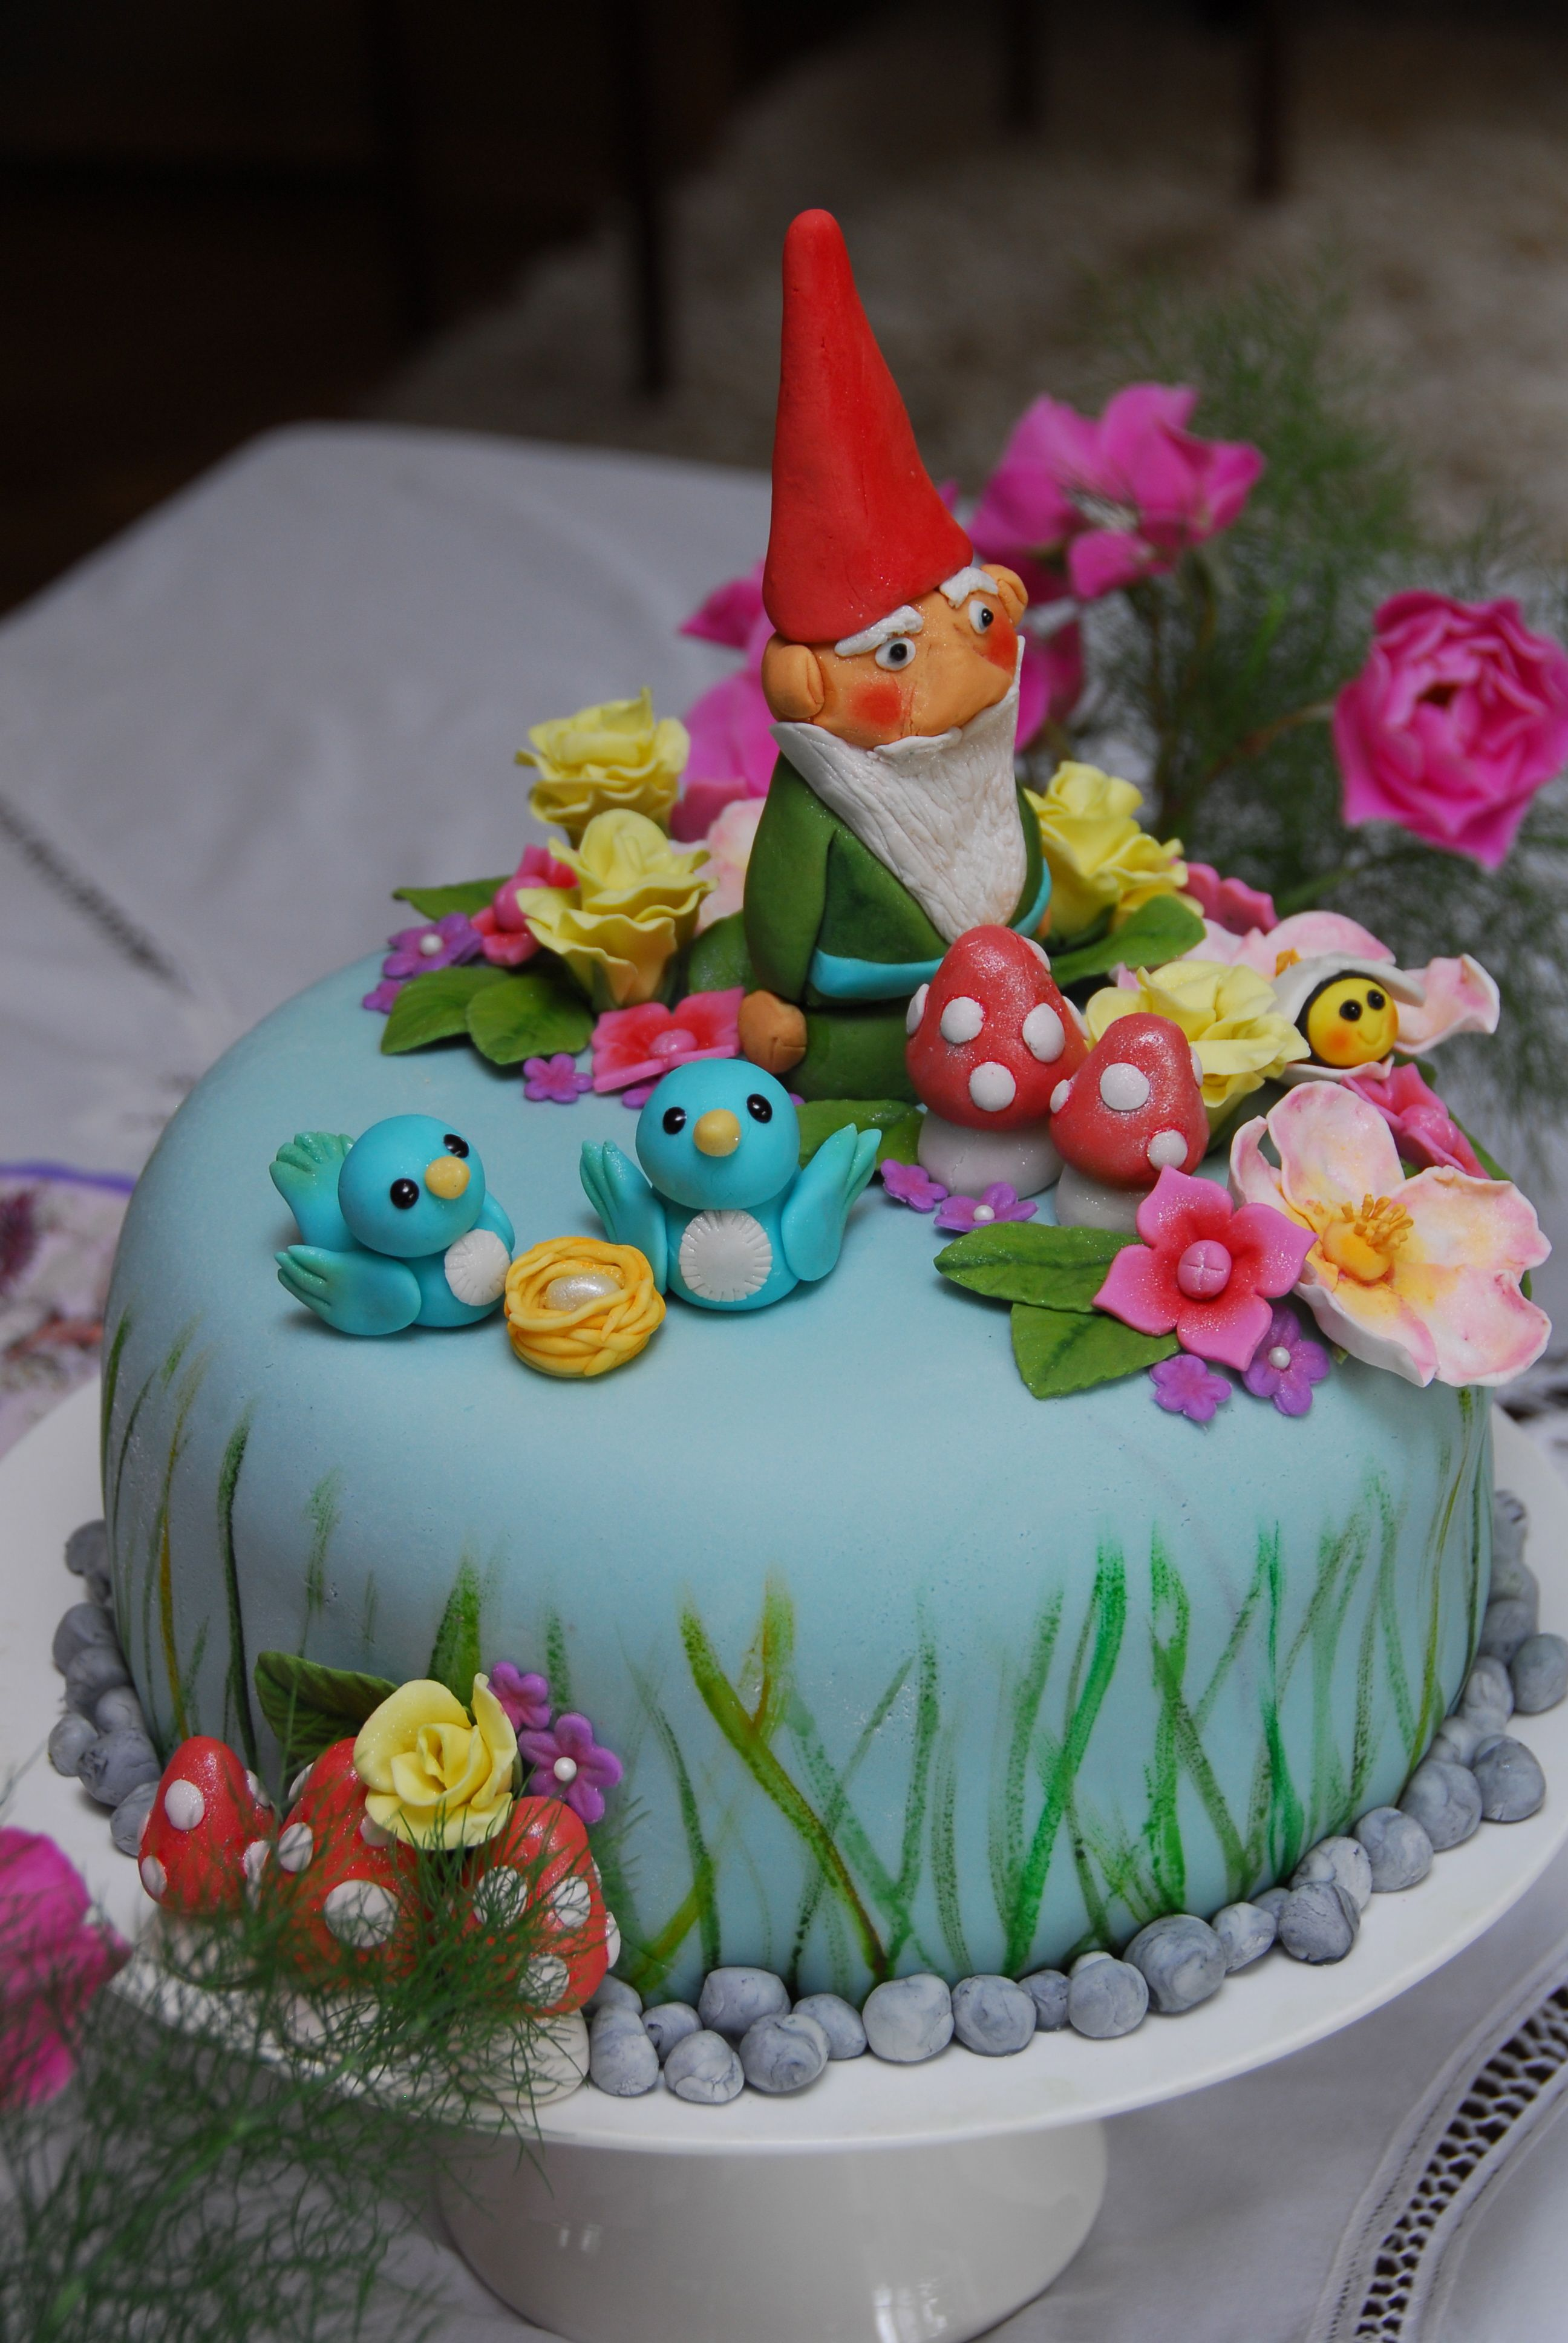 fondant garden party cake bee flower bird nest